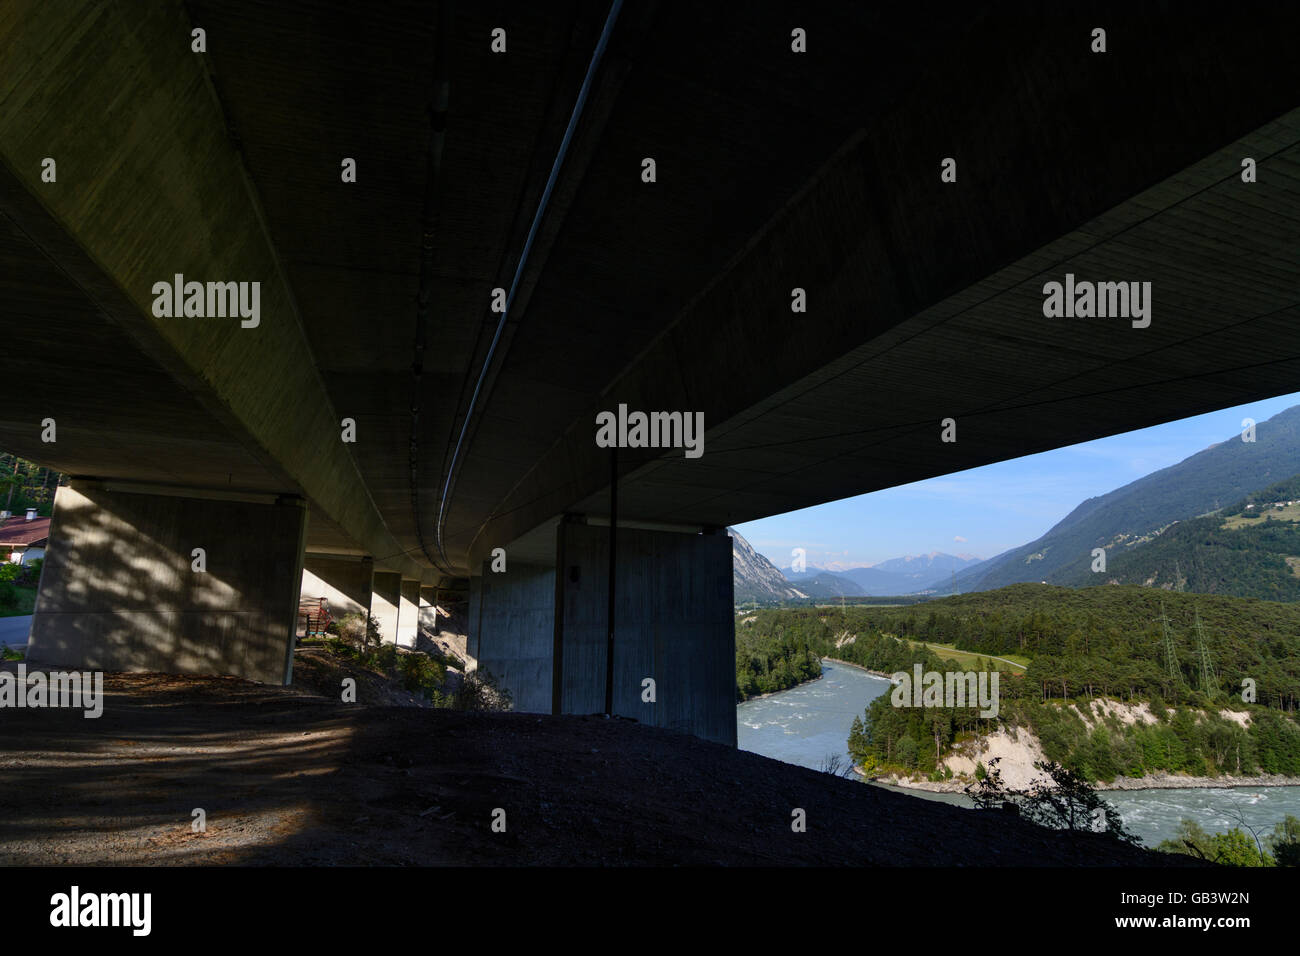 Haiming Highway bridge of the A12 motorway and River Inn Austria Tirol, Tyrol - Stock Image